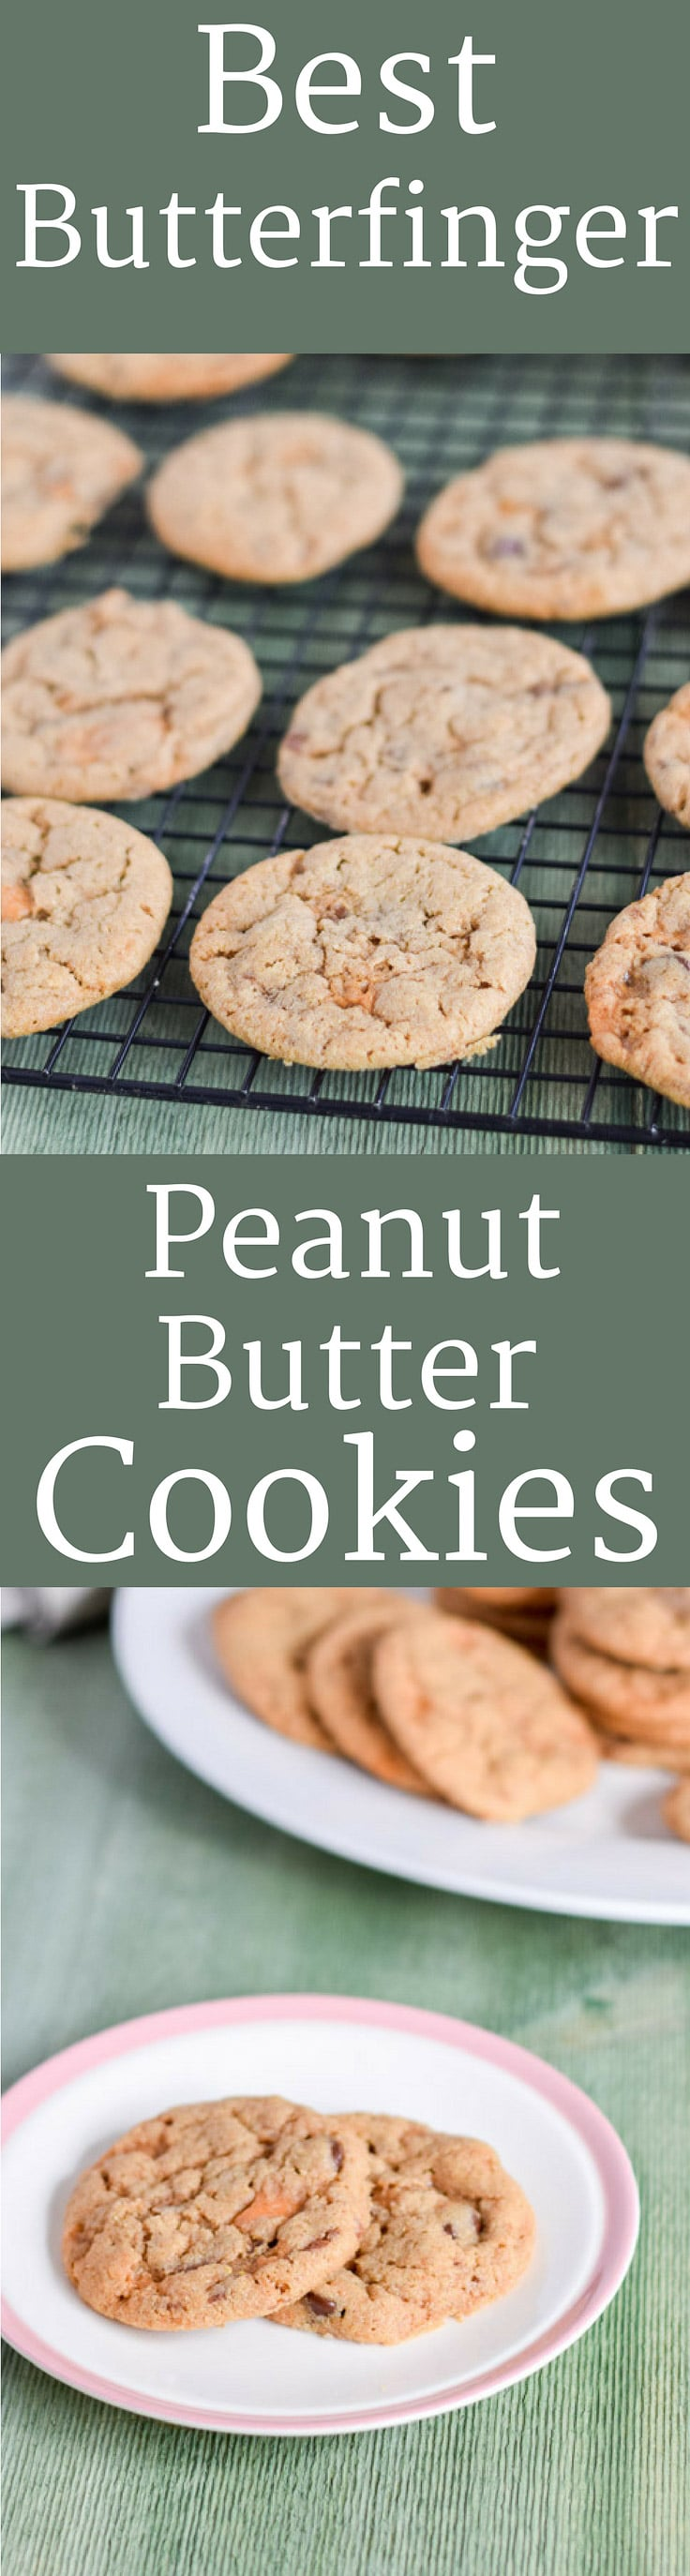 Best Butterfinger Cookies are crunchy, delicious and perfect for your cookie tray!  Who wants a cookie!?? #cookies #peanutbutter #butterfingers http://ddel.co/butterfinger-cookies